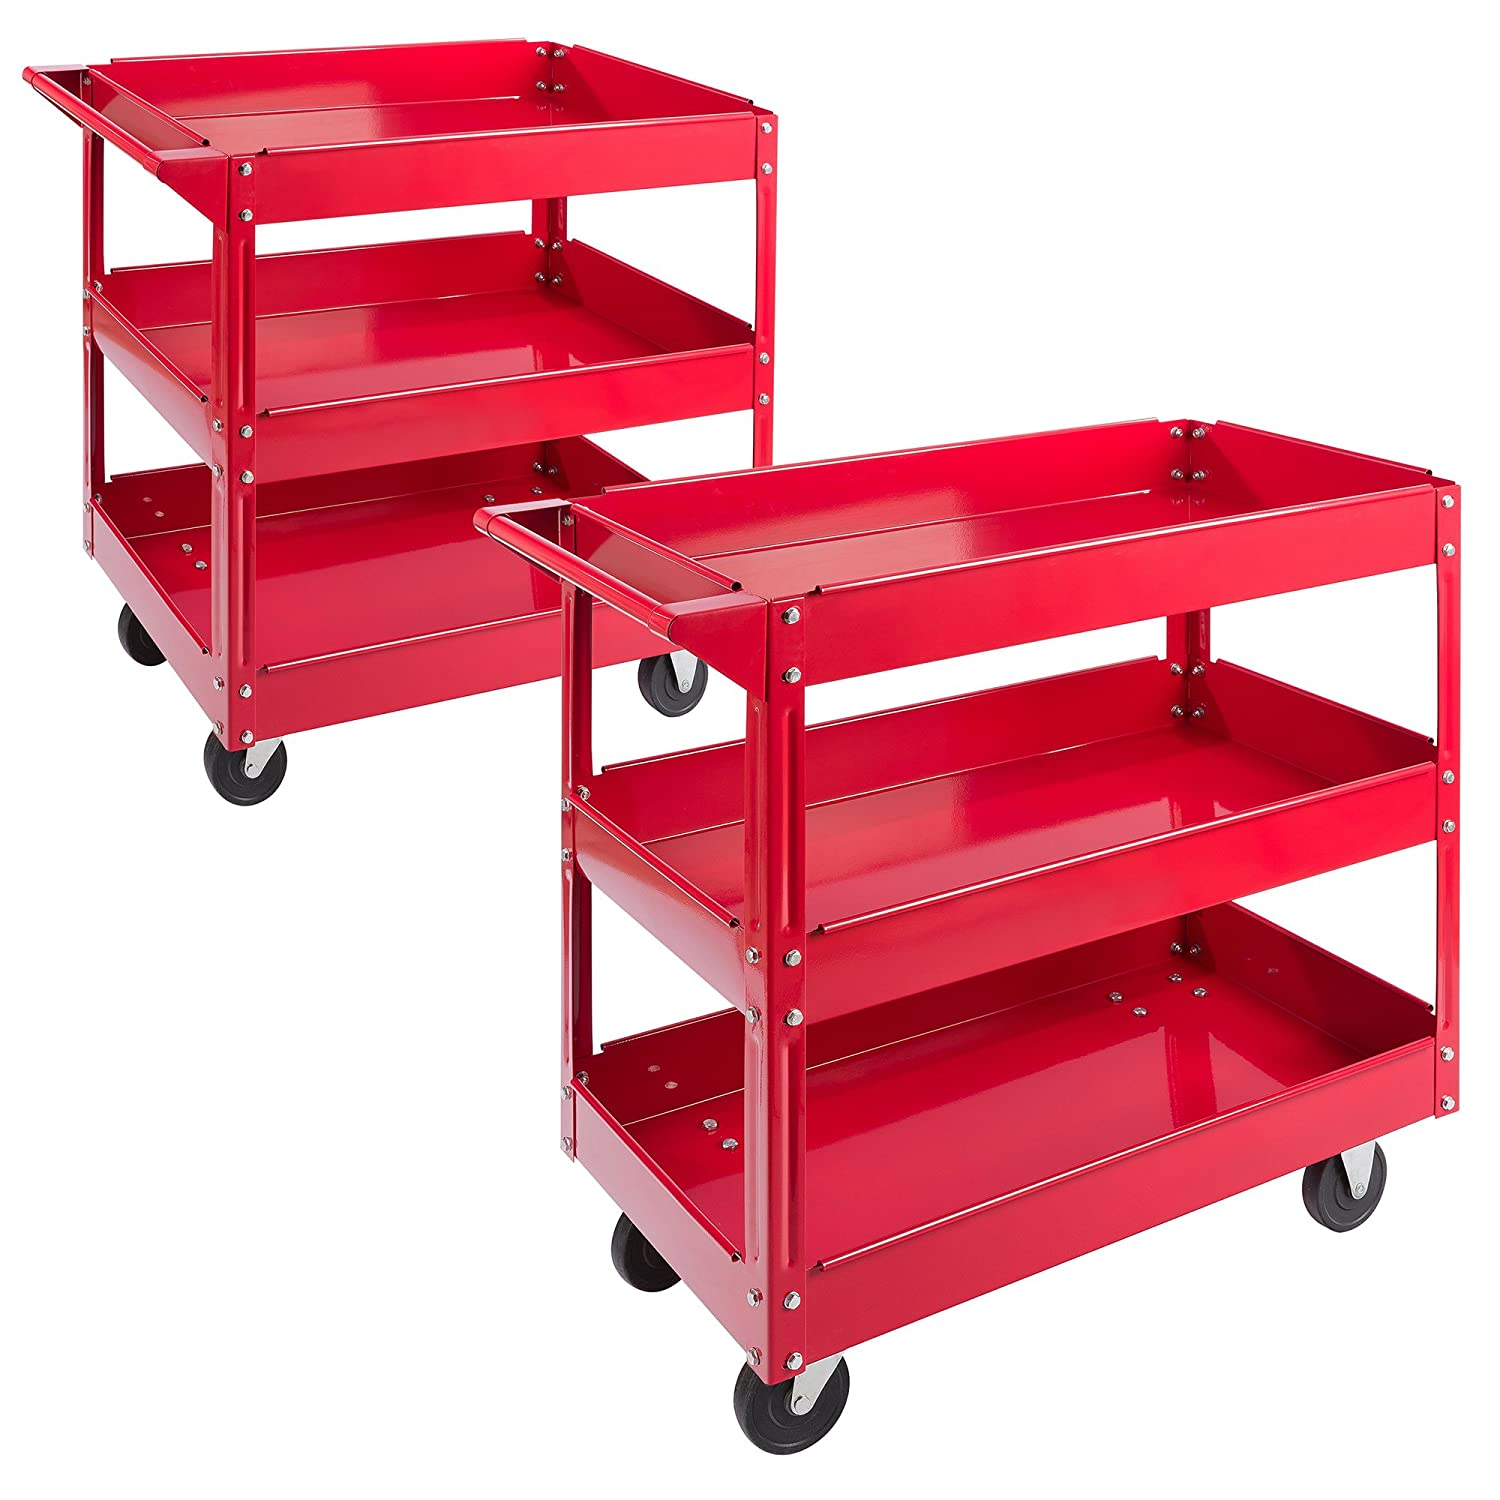 Arebos Workshop Tool Trolley with 2 or 3 levels / Large load capacity up to 220 lbs Canbolat Vertriebs GmbH